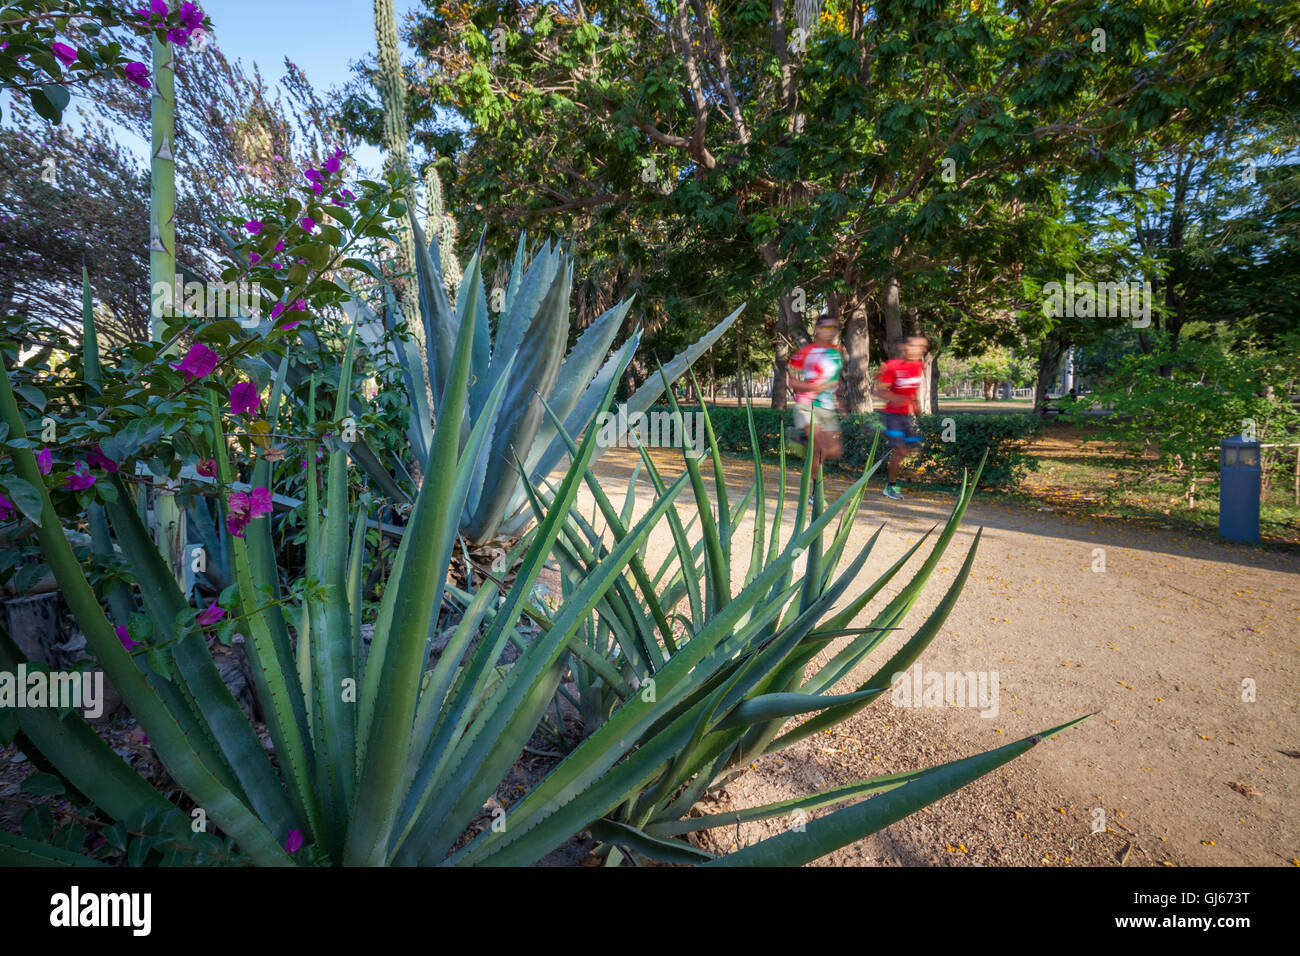 Runners on a trail in the Parque Botanico of Los Mochis, Sinaloa, Mexico. - Stock Image